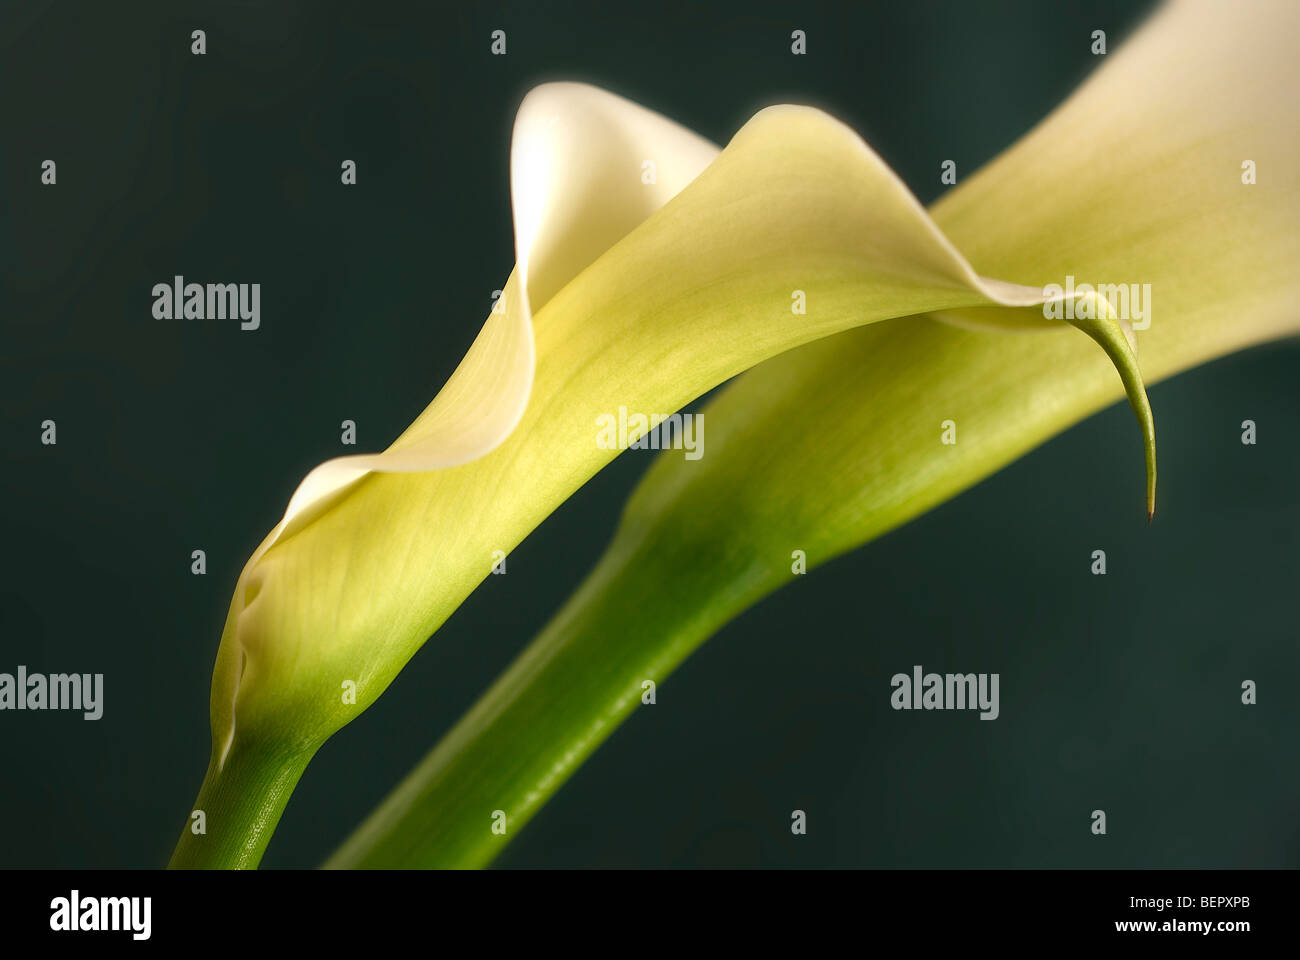 Lily, lilium, arum lily, vertical, profile, white lily, white, two lilies, 2 lily's, wedding, landscape format, - Stock Image